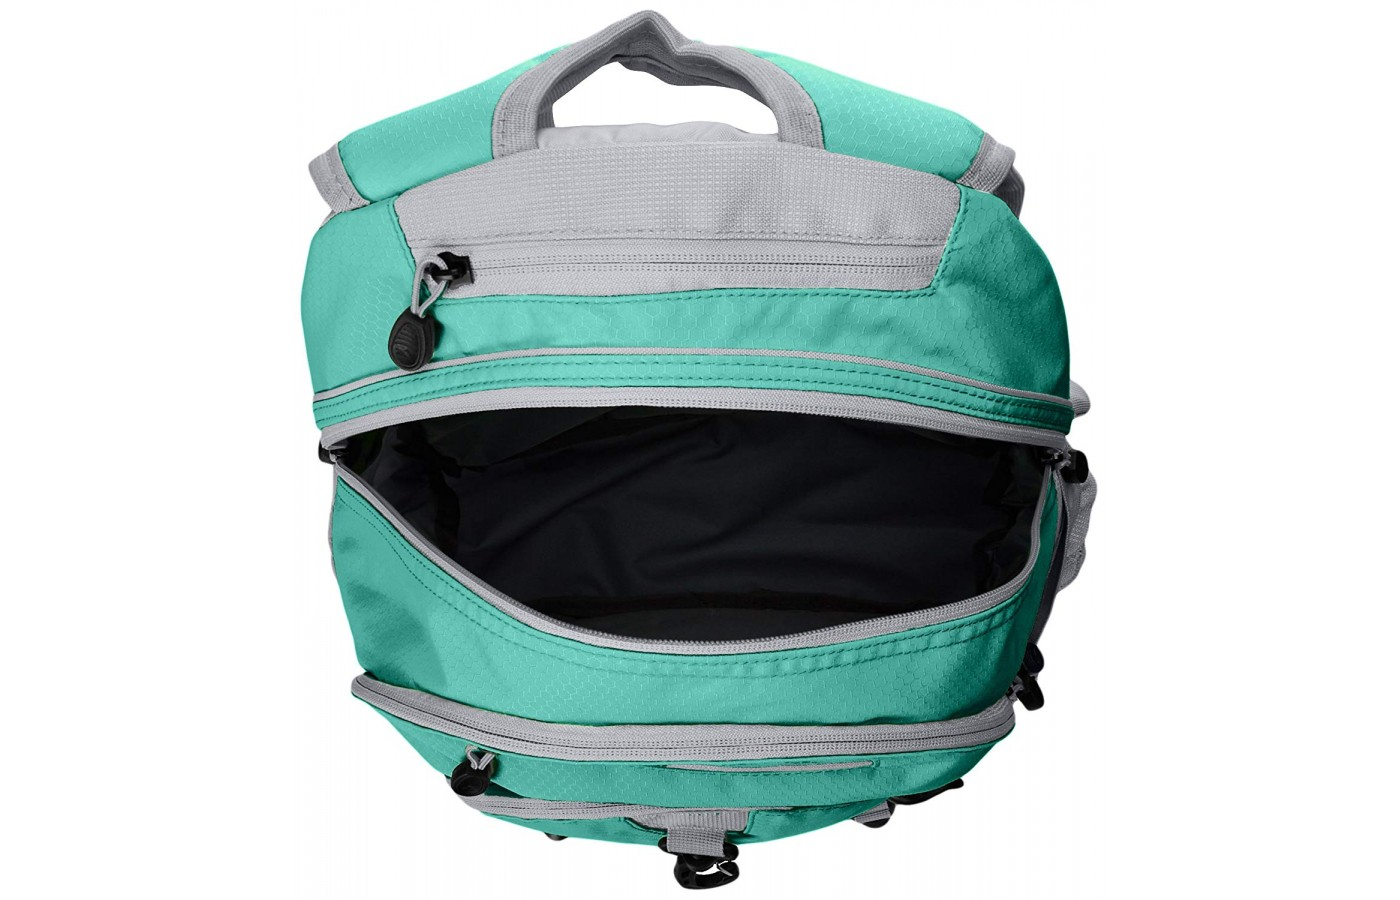 Multiple pockets and generous main compartments allow gear to be kept organized and secure.